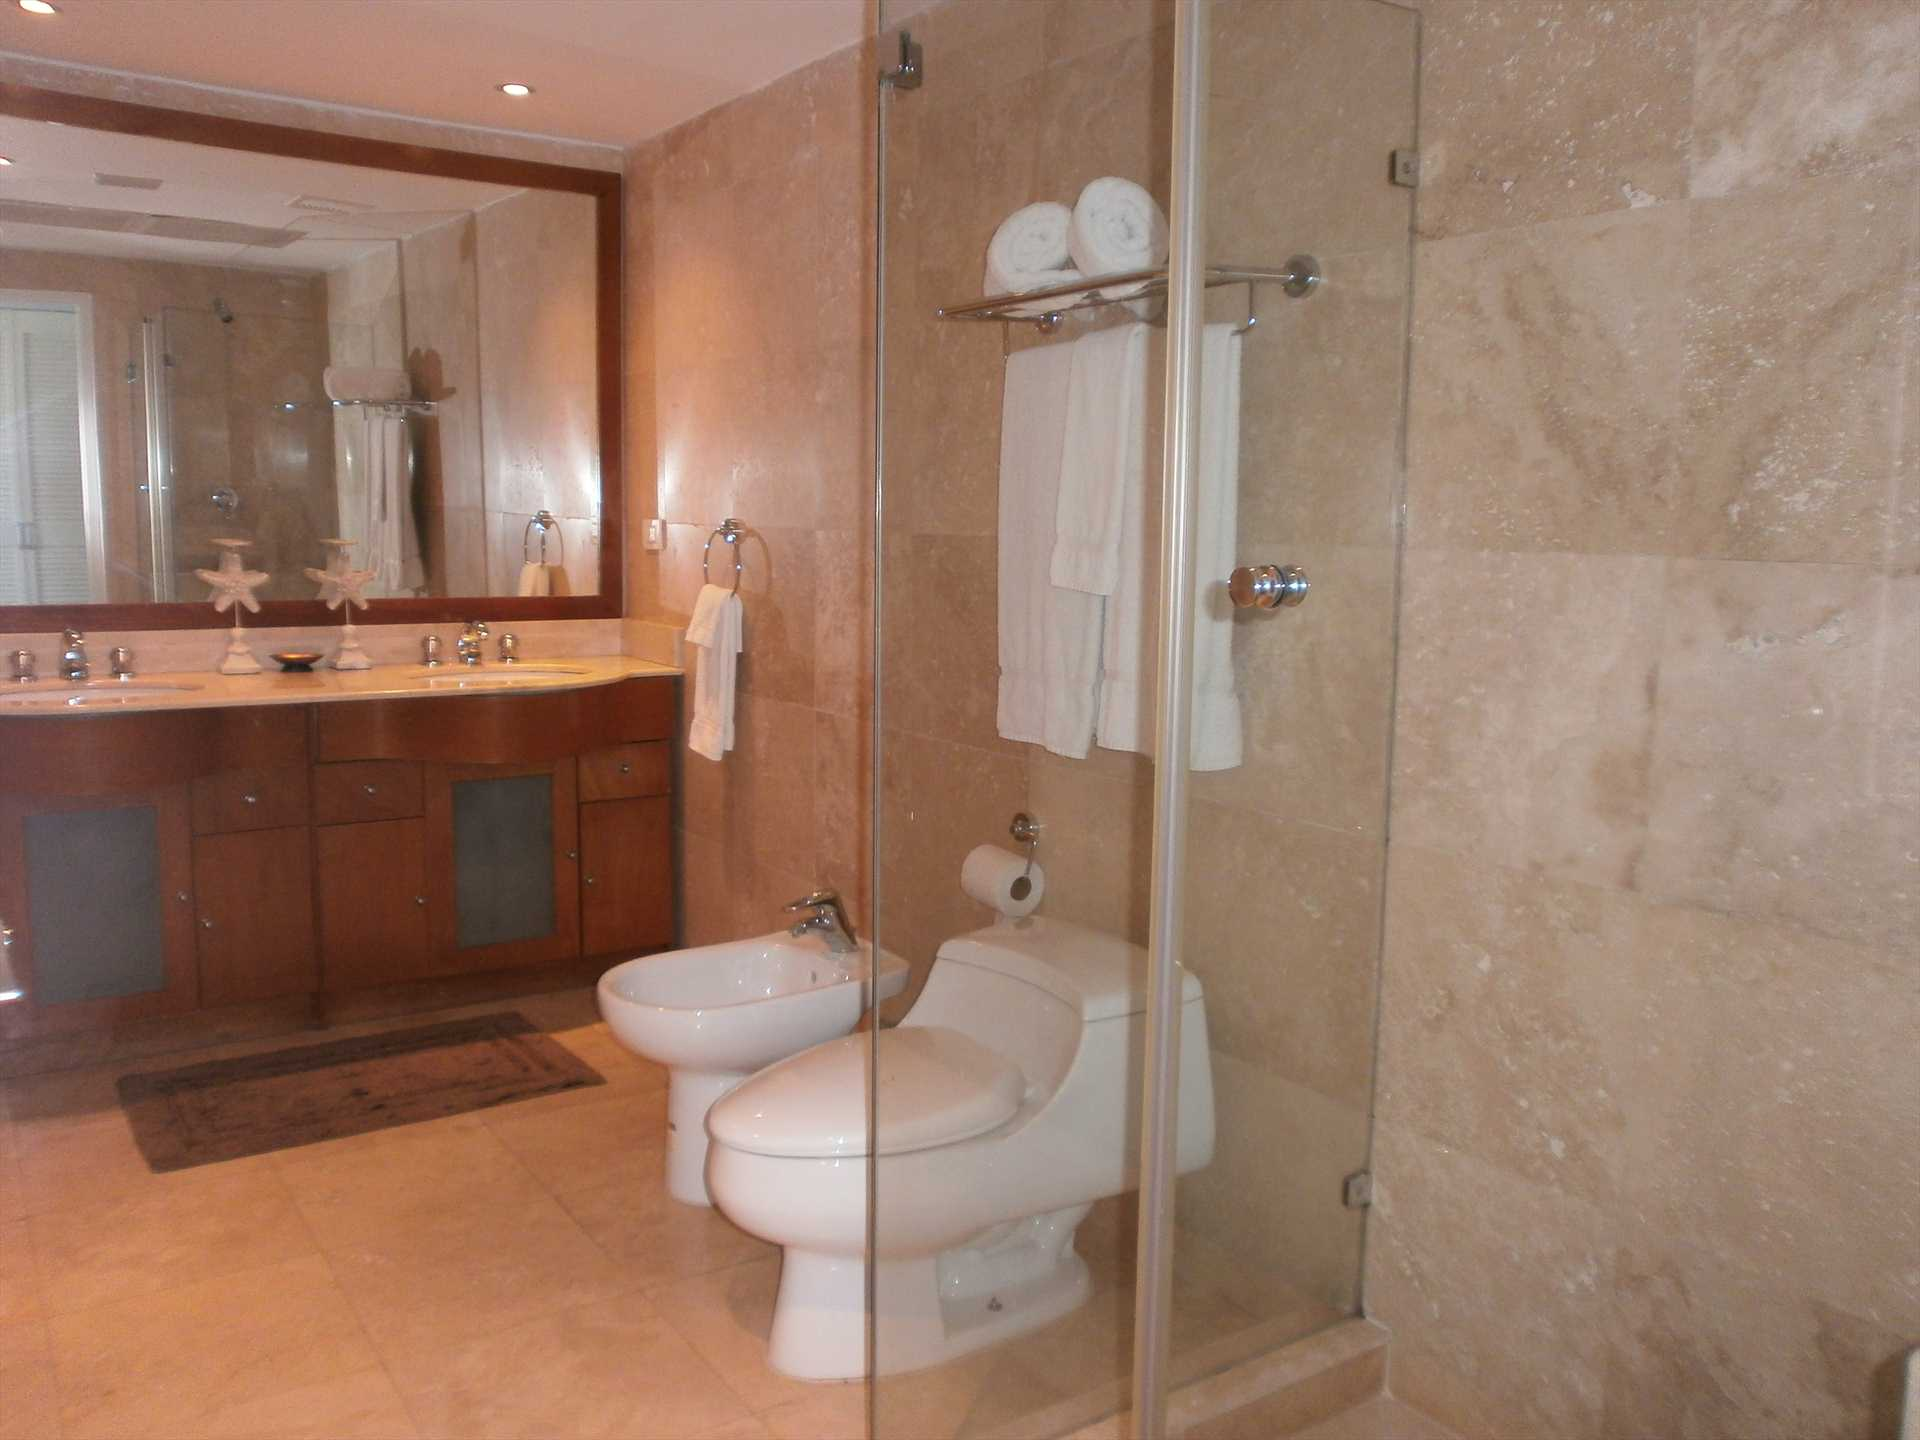 Spacious and modern full master bathroom with glass-enclosed shower.